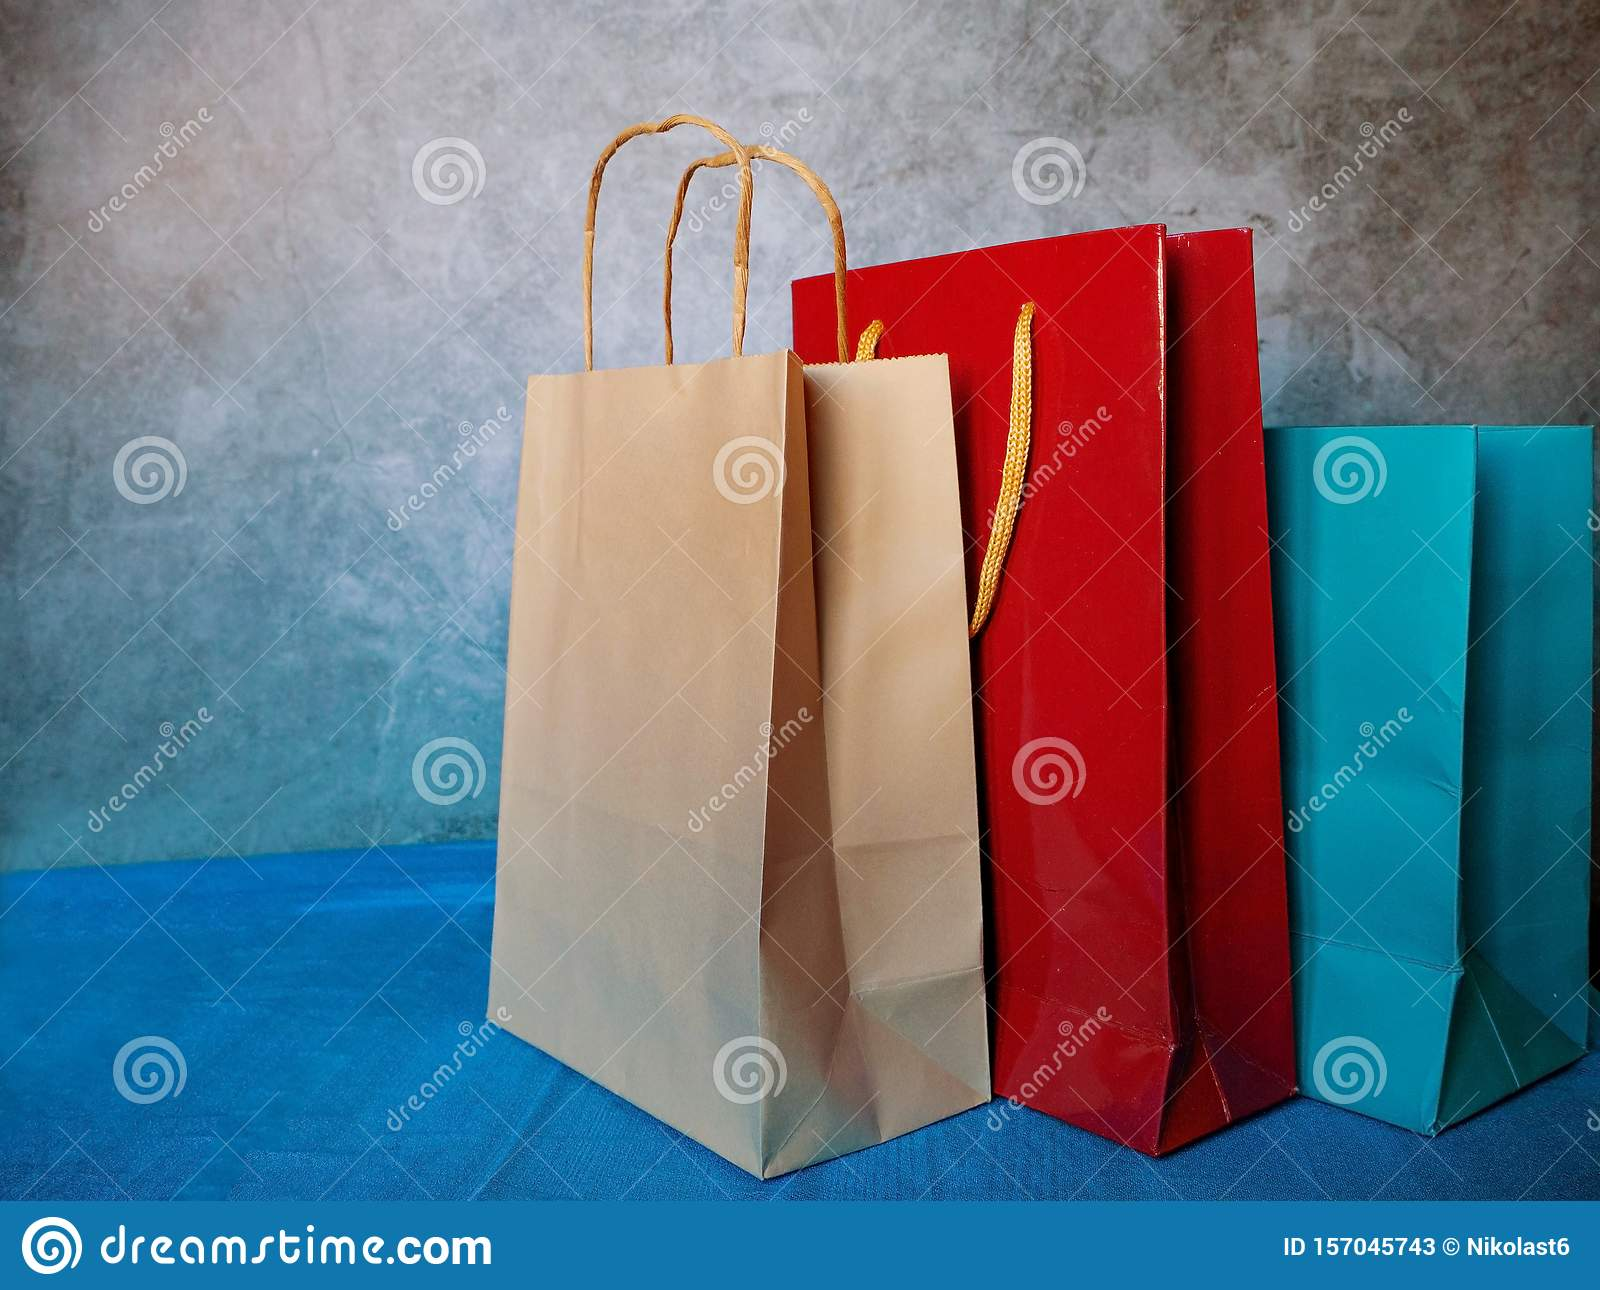 Paper Gift Bags With Rope Handles Three Blank Carry Bags On White Background Cropped Image Stock Image Image Of Birthday Retail 157045743